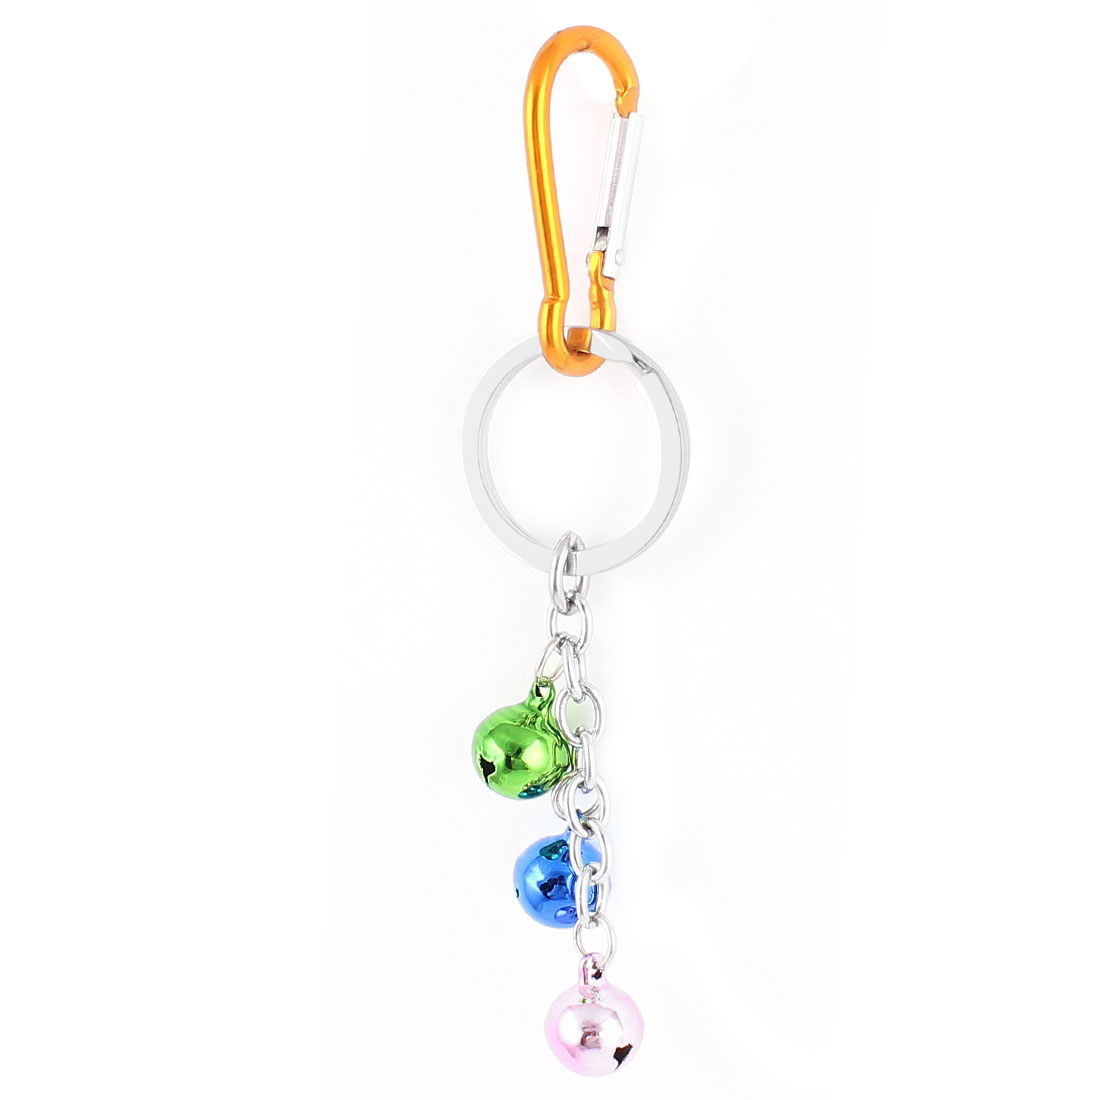 Carabiner Hook 3 Bells Pendant Key Ring Holder Keychain Keyring Orange